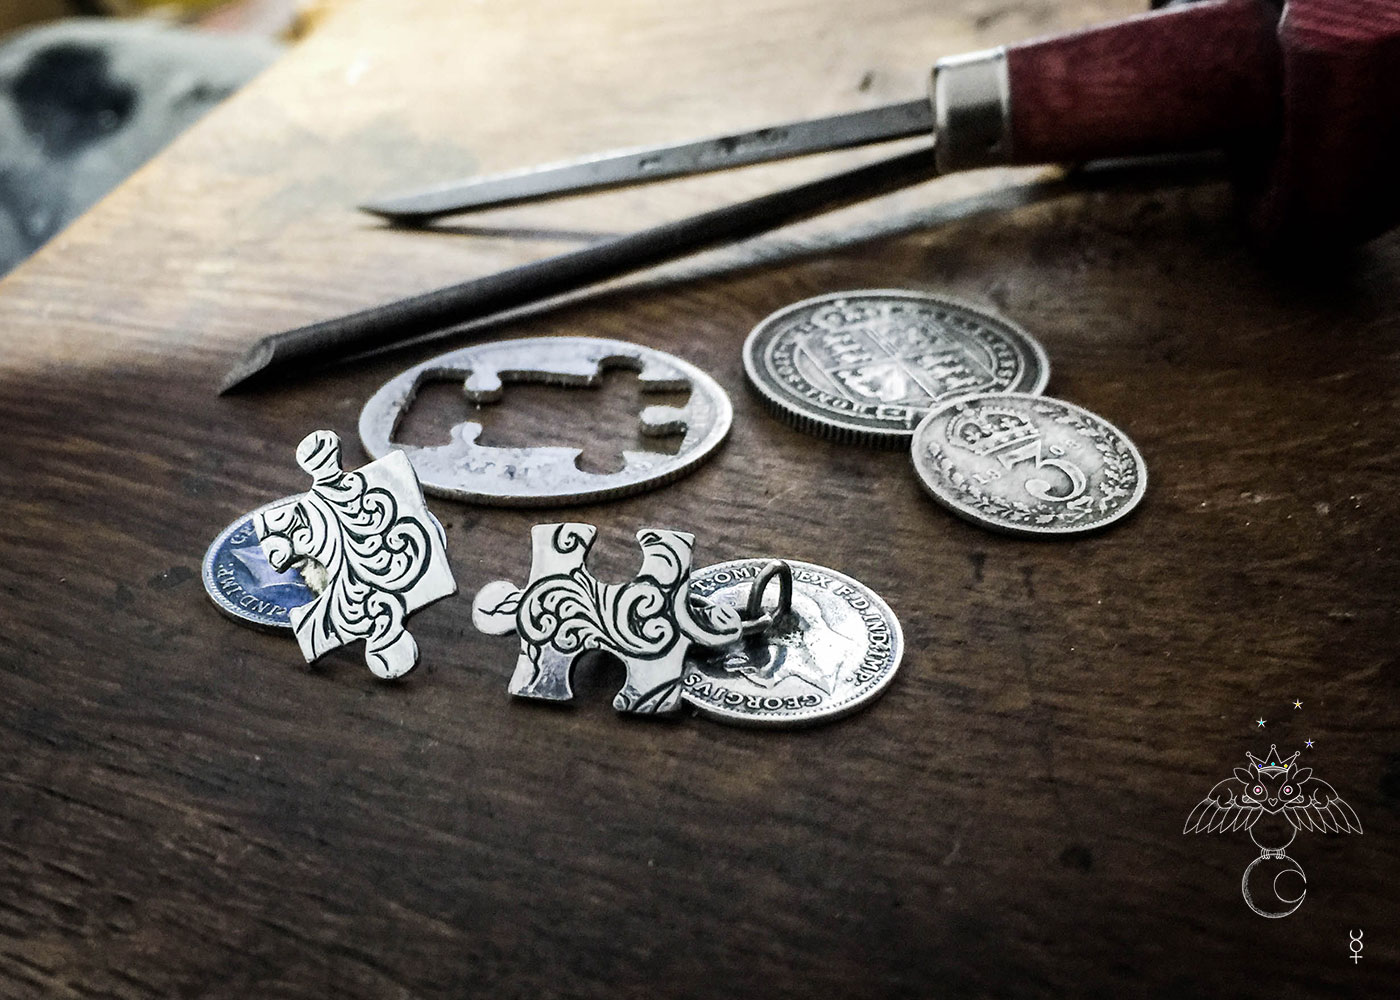 Handcrafted and repurposed lucky threepence coin jigsaw cufflinks